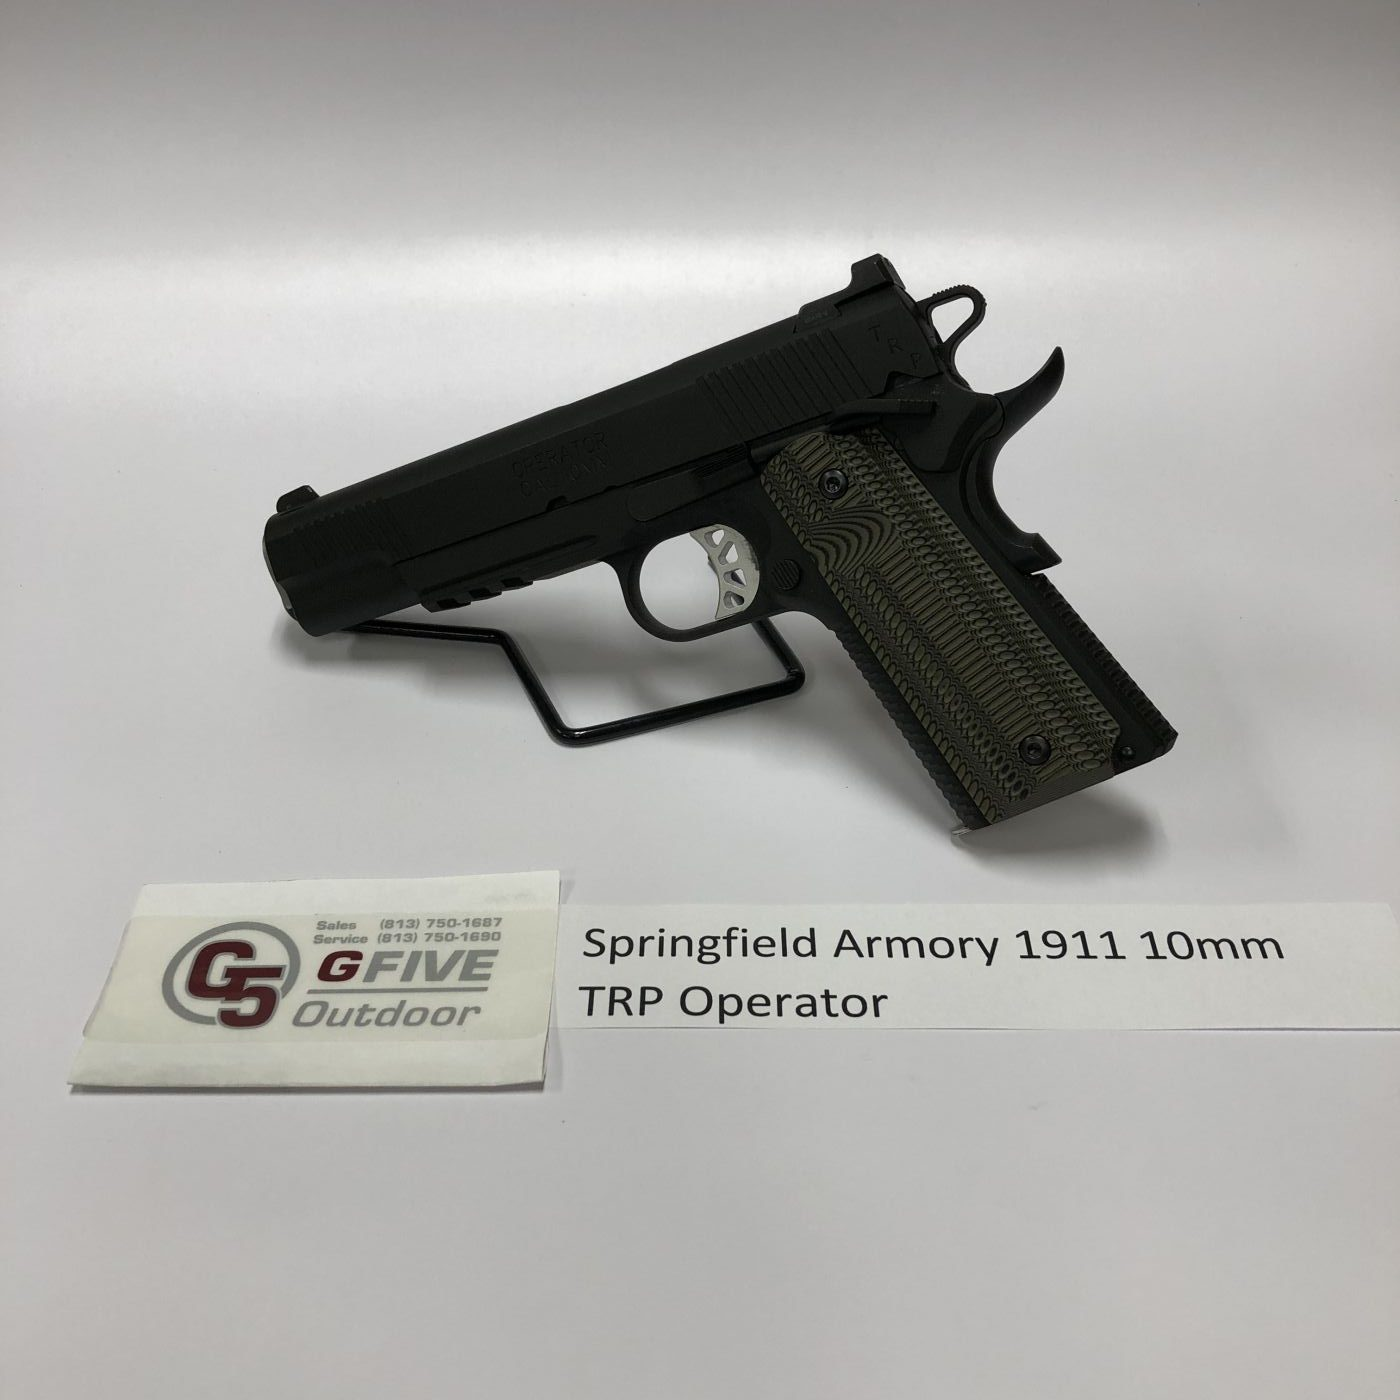 Springfield Armory 1911 10mm TRP Operator - G5 Feed & Outdoor : G5